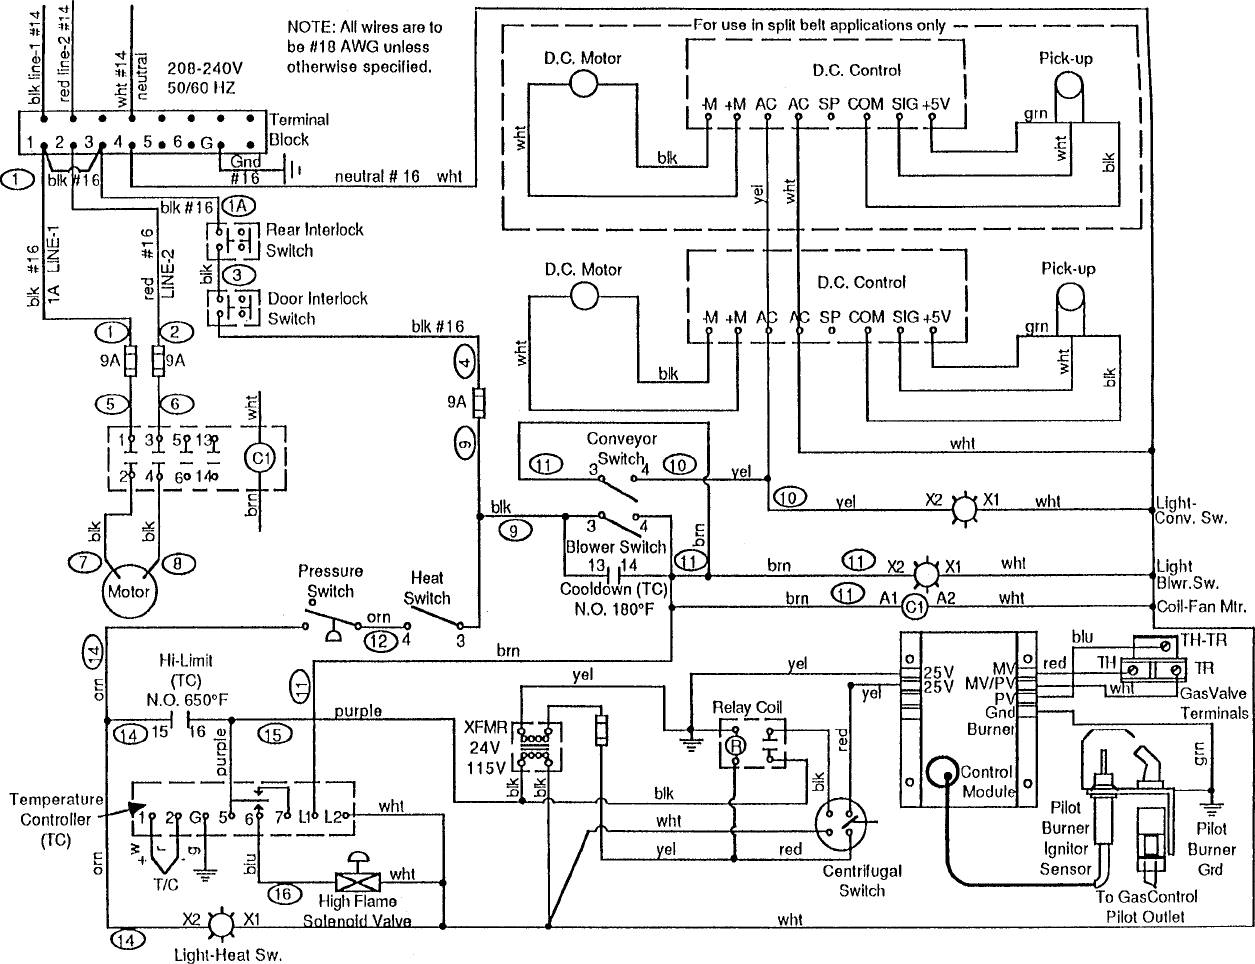 Ki ic Moped Wiring Diagram furthermore Ground Support Headset Wiring Diagrams as well Wiring Diagram Electric Bike Controller besides  on razor 24v motorcycle wire diagram troubleshooting